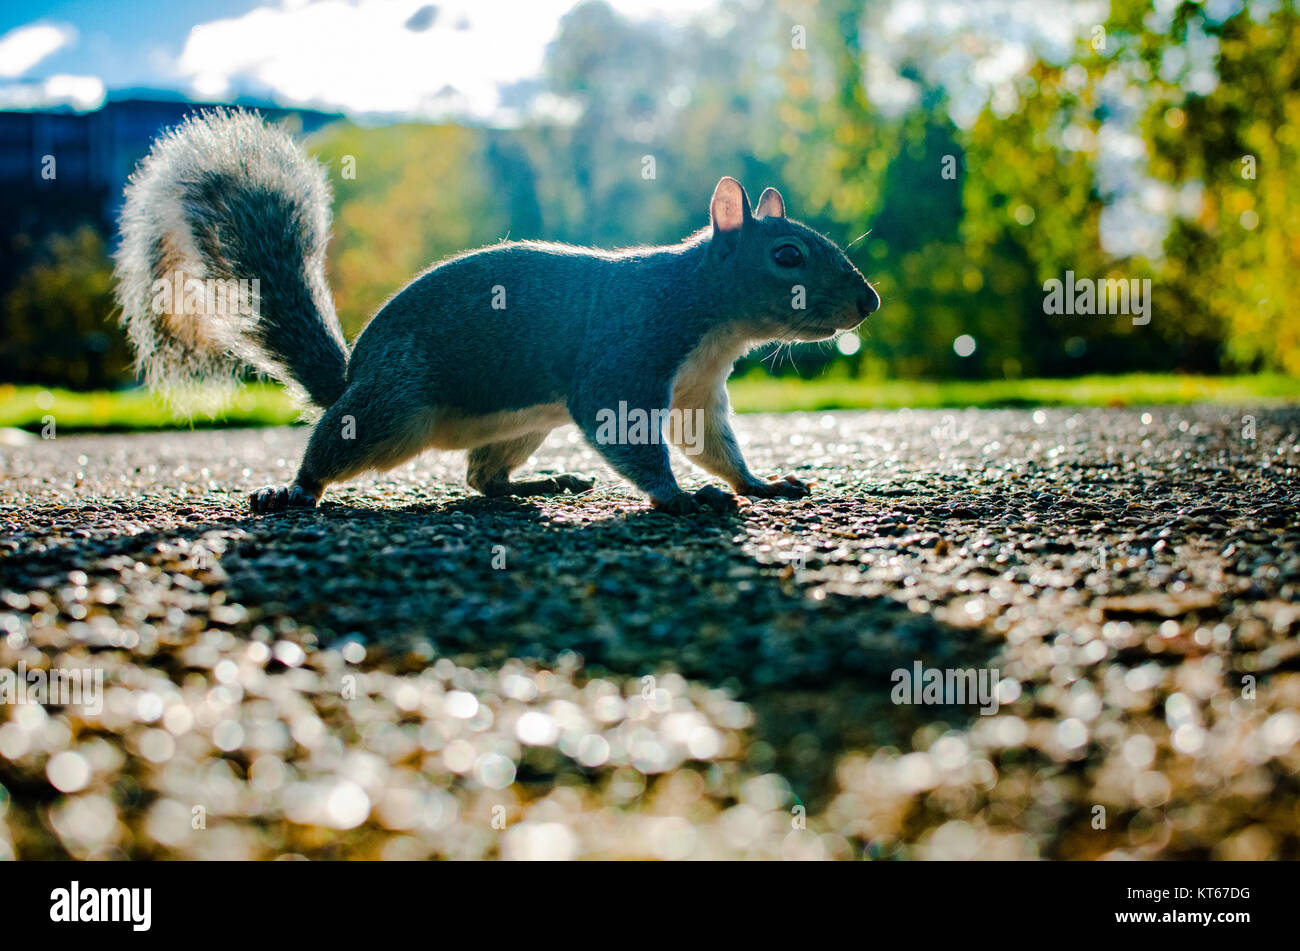 A fearless tree squirrel ventures on the road in summer - Stock Image